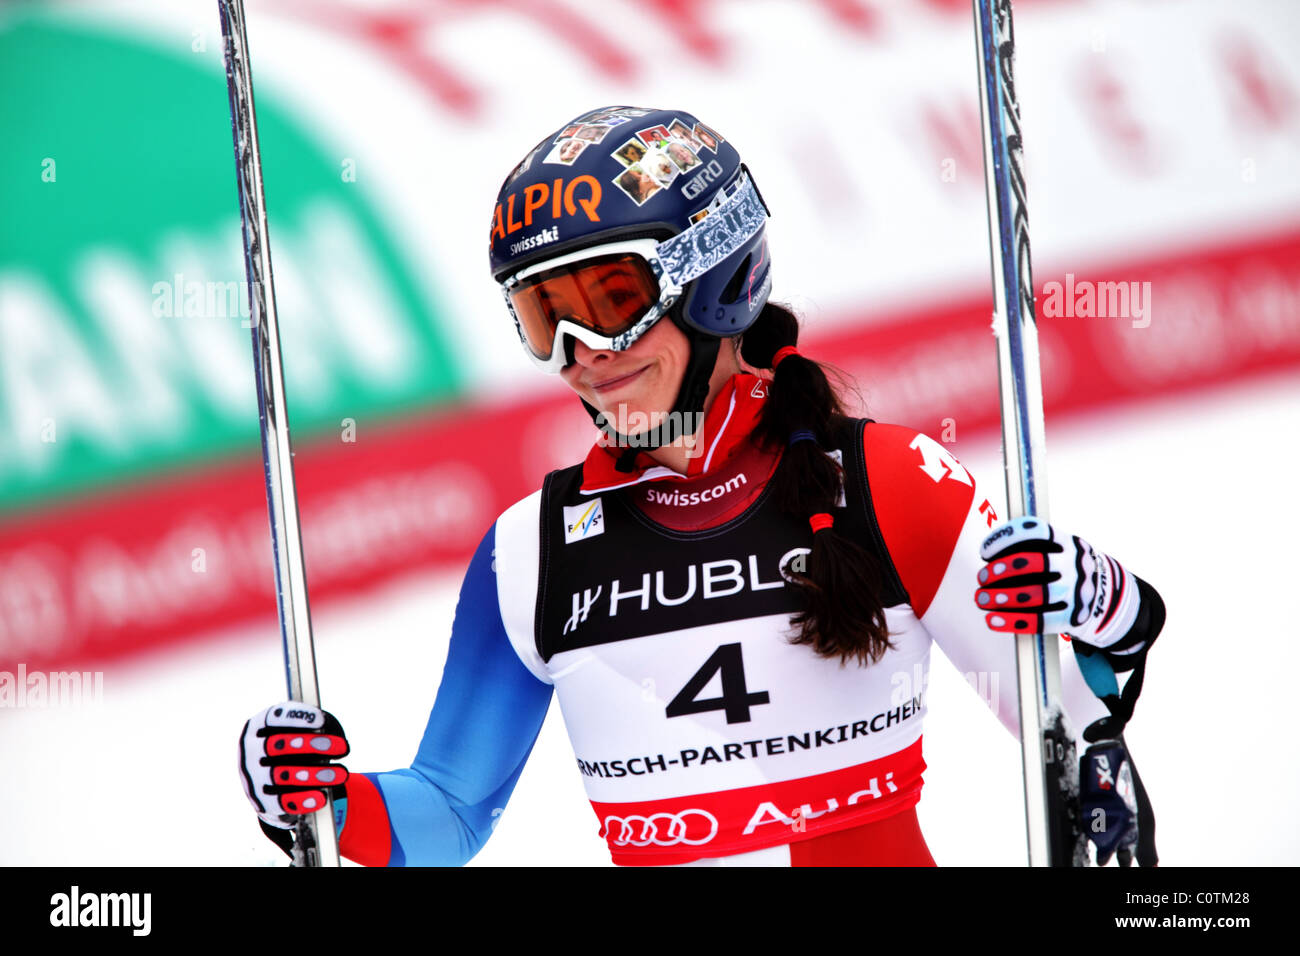 Dominique Gisin (SUI) at the FIS Alpine World Ski Championships 2011 in Garmisch-Partenkirchen - Stock Image